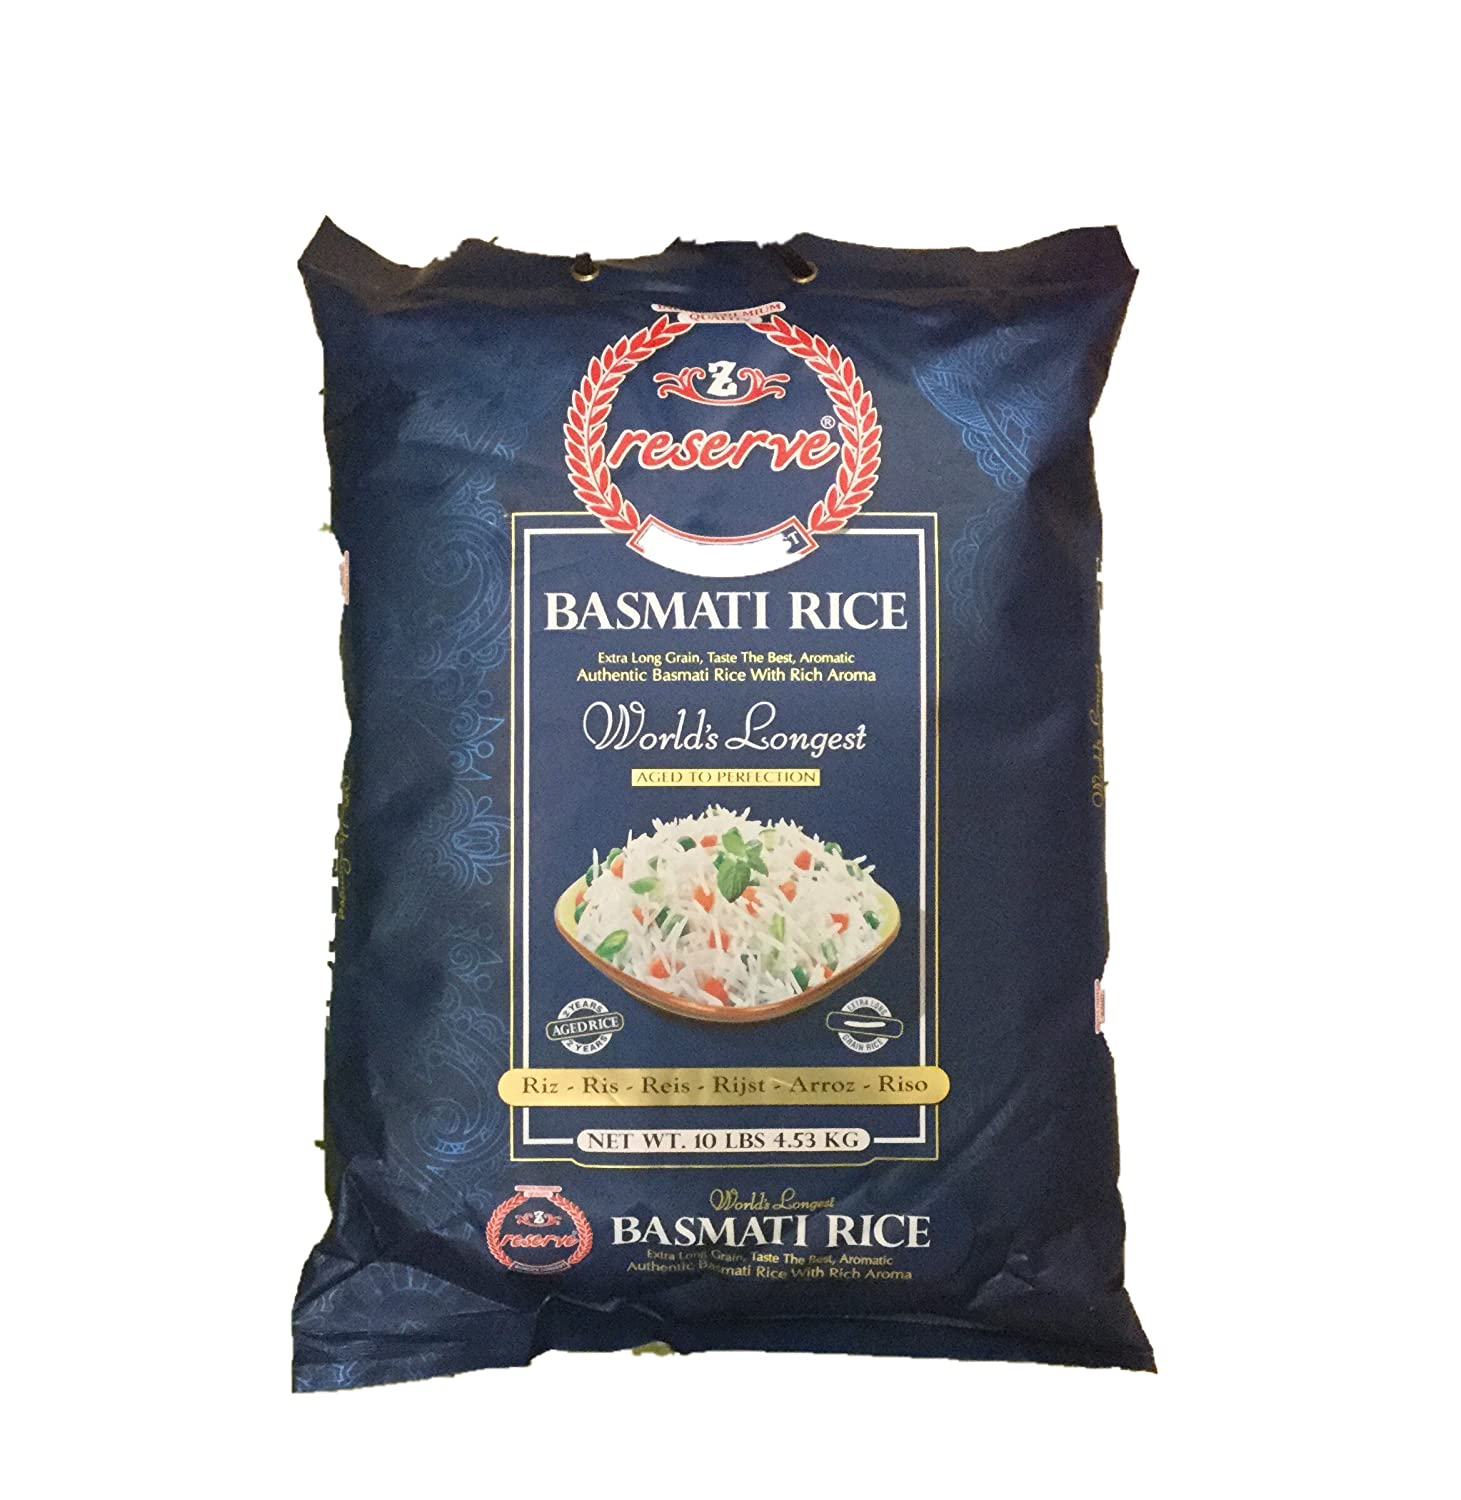 Zafarani Reserve GMO Free Extra Long Grain, Taste the Best, Aromatic Authentic Basmati Rice with Rich Aroma - 10lbs., 4.53kg